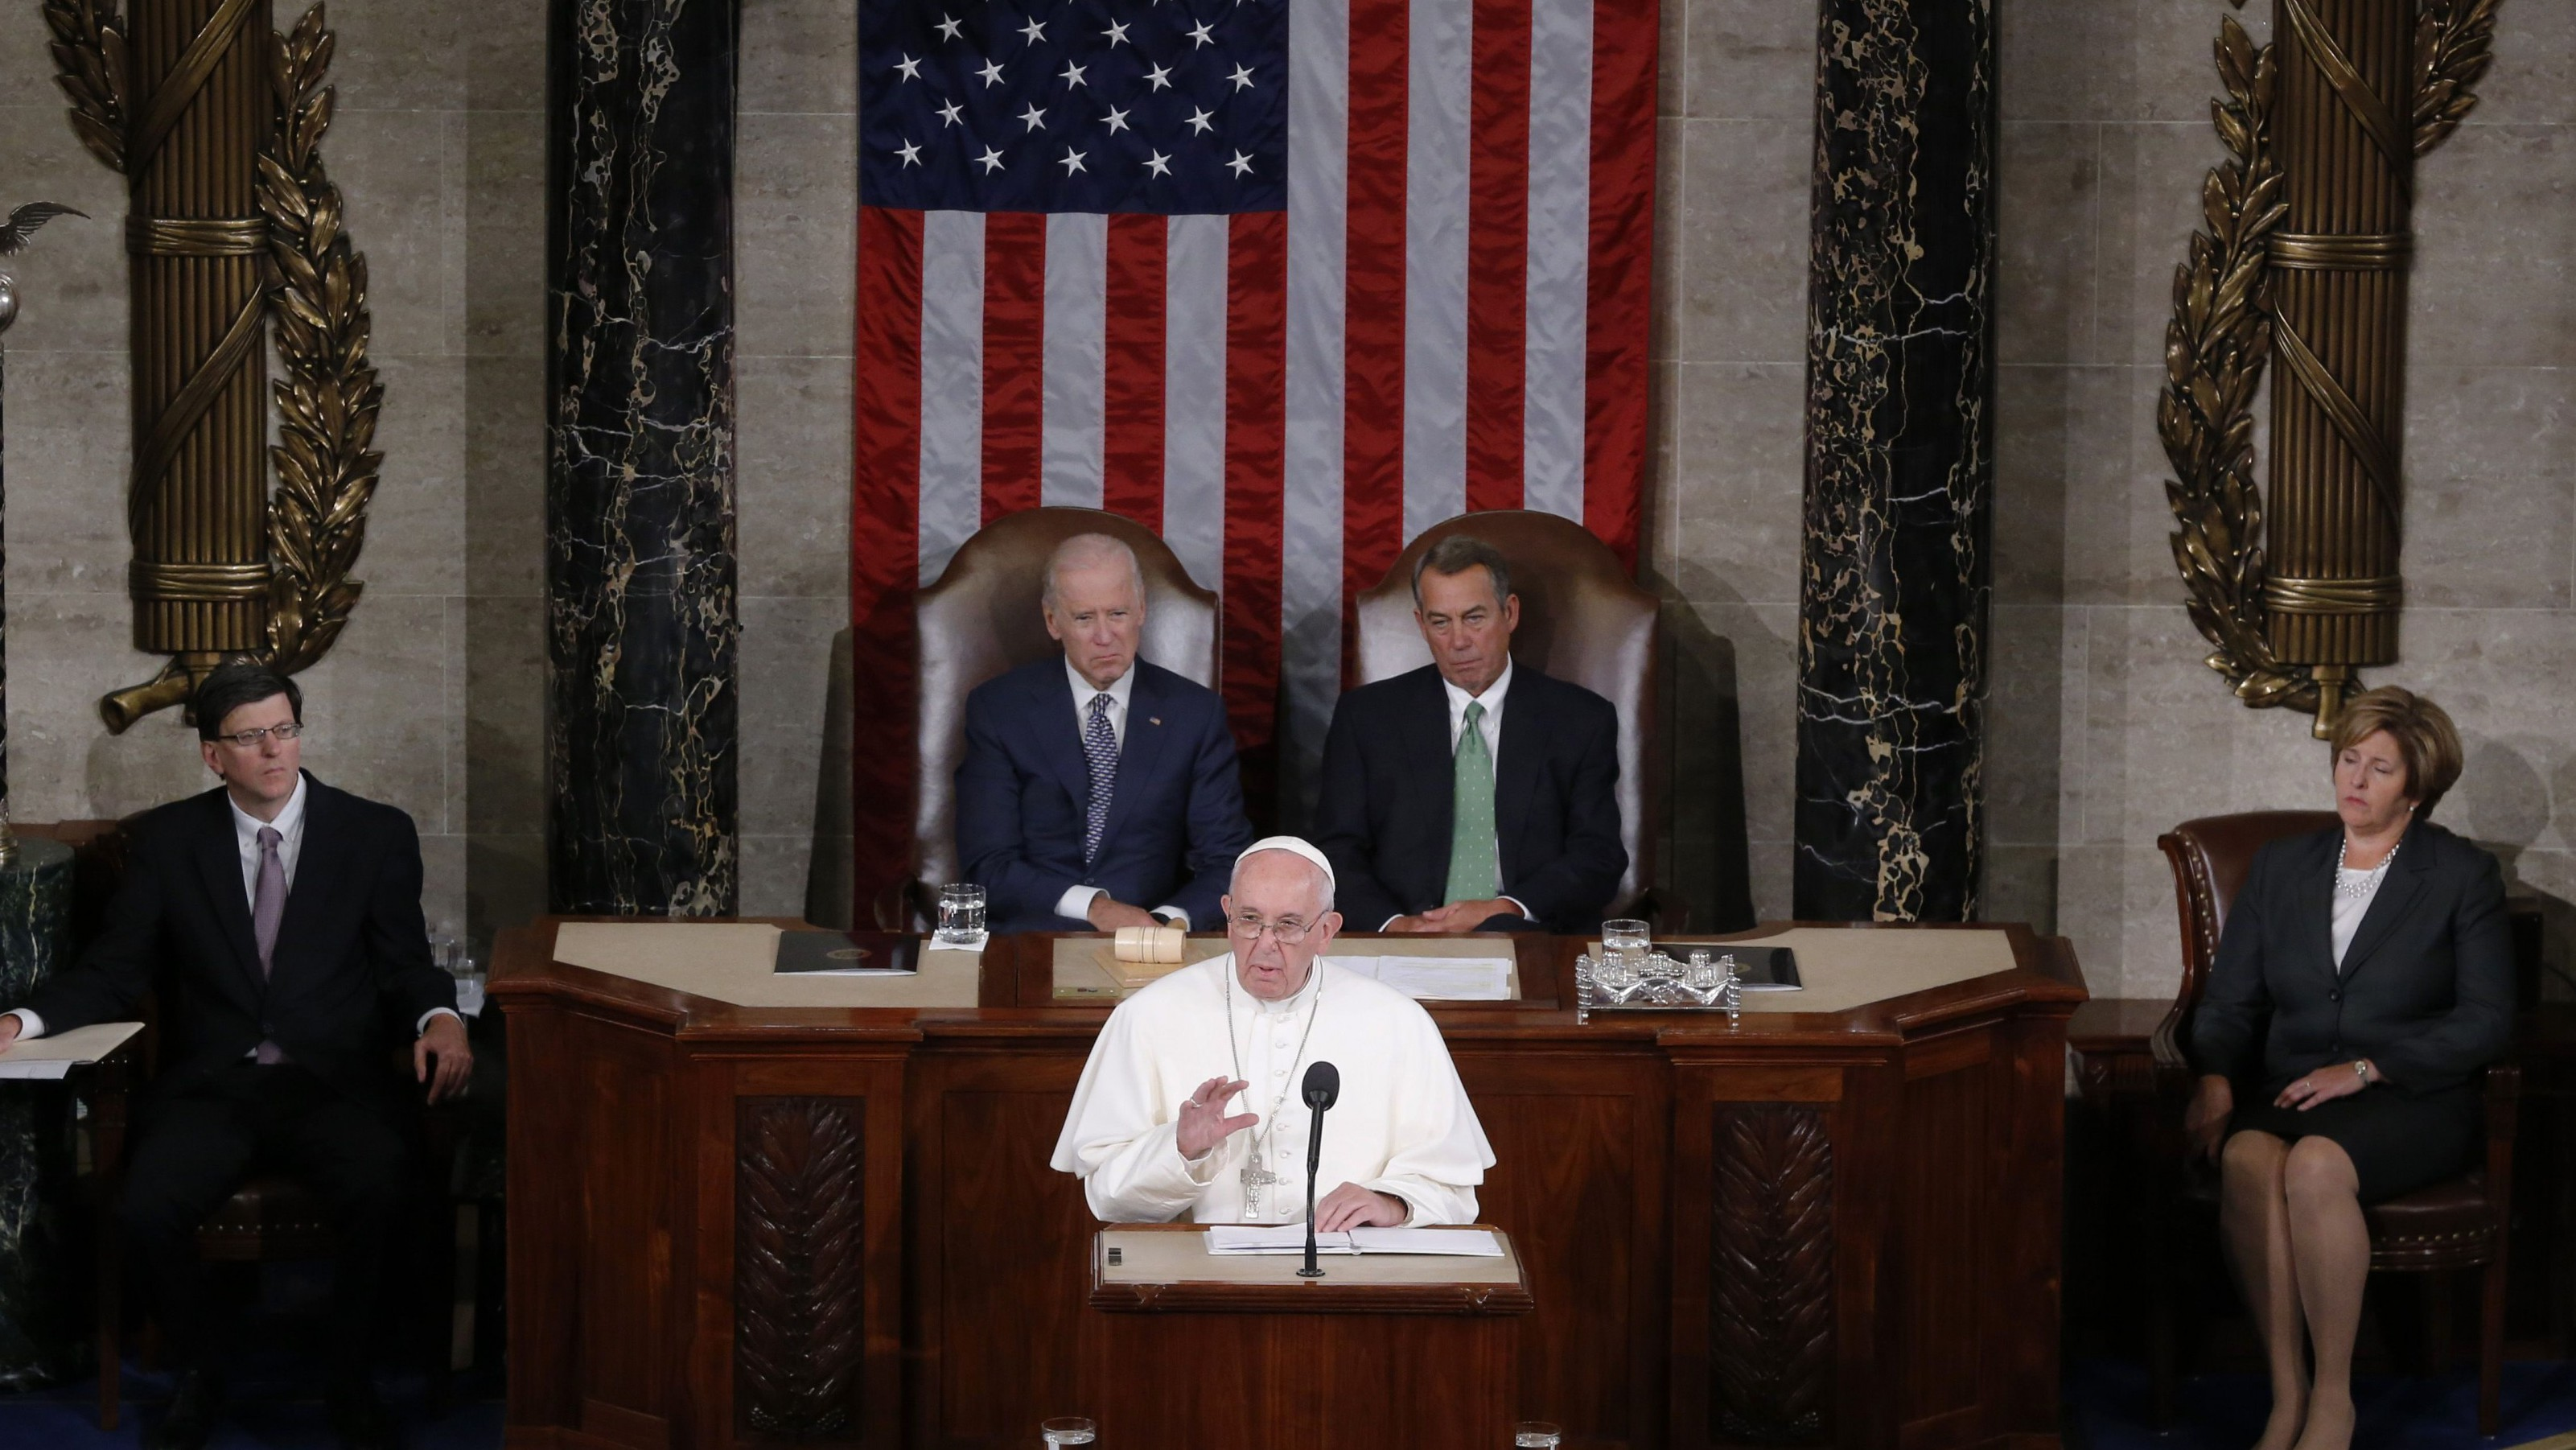 Pope Francis (C) addresses a joint meeting of the U.S. Congress as Vice President Joe Biden (L) and Speaker of the House John Boehner (R) look on in the House of Representatives Chamber on Capitol Hill in Washington September 24, 2015. REUTERS/Jim Bourg - RTX1S9FT